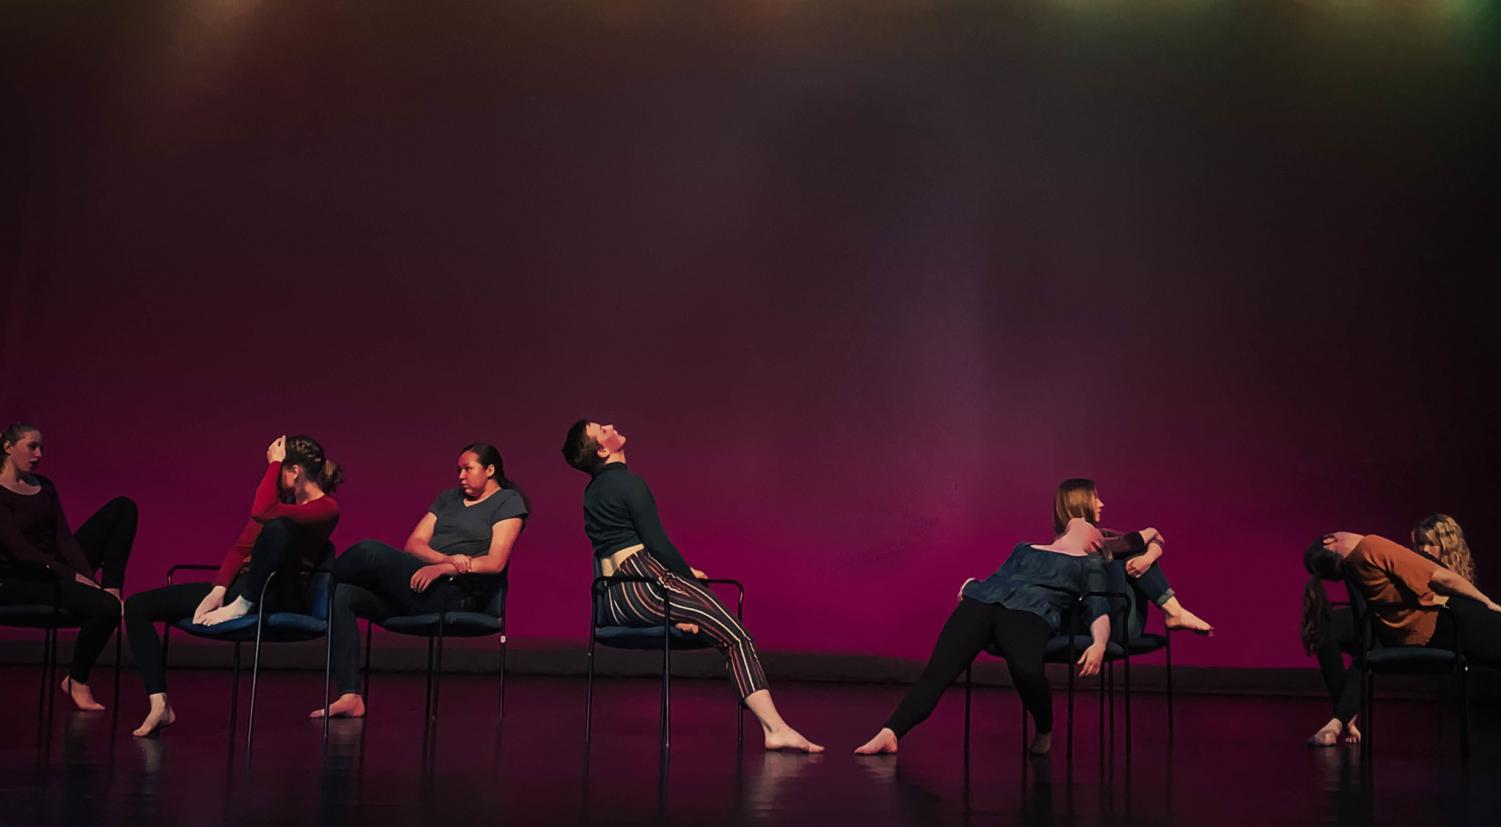 Senior Dance Show brings passion to life onstage – The Winonan